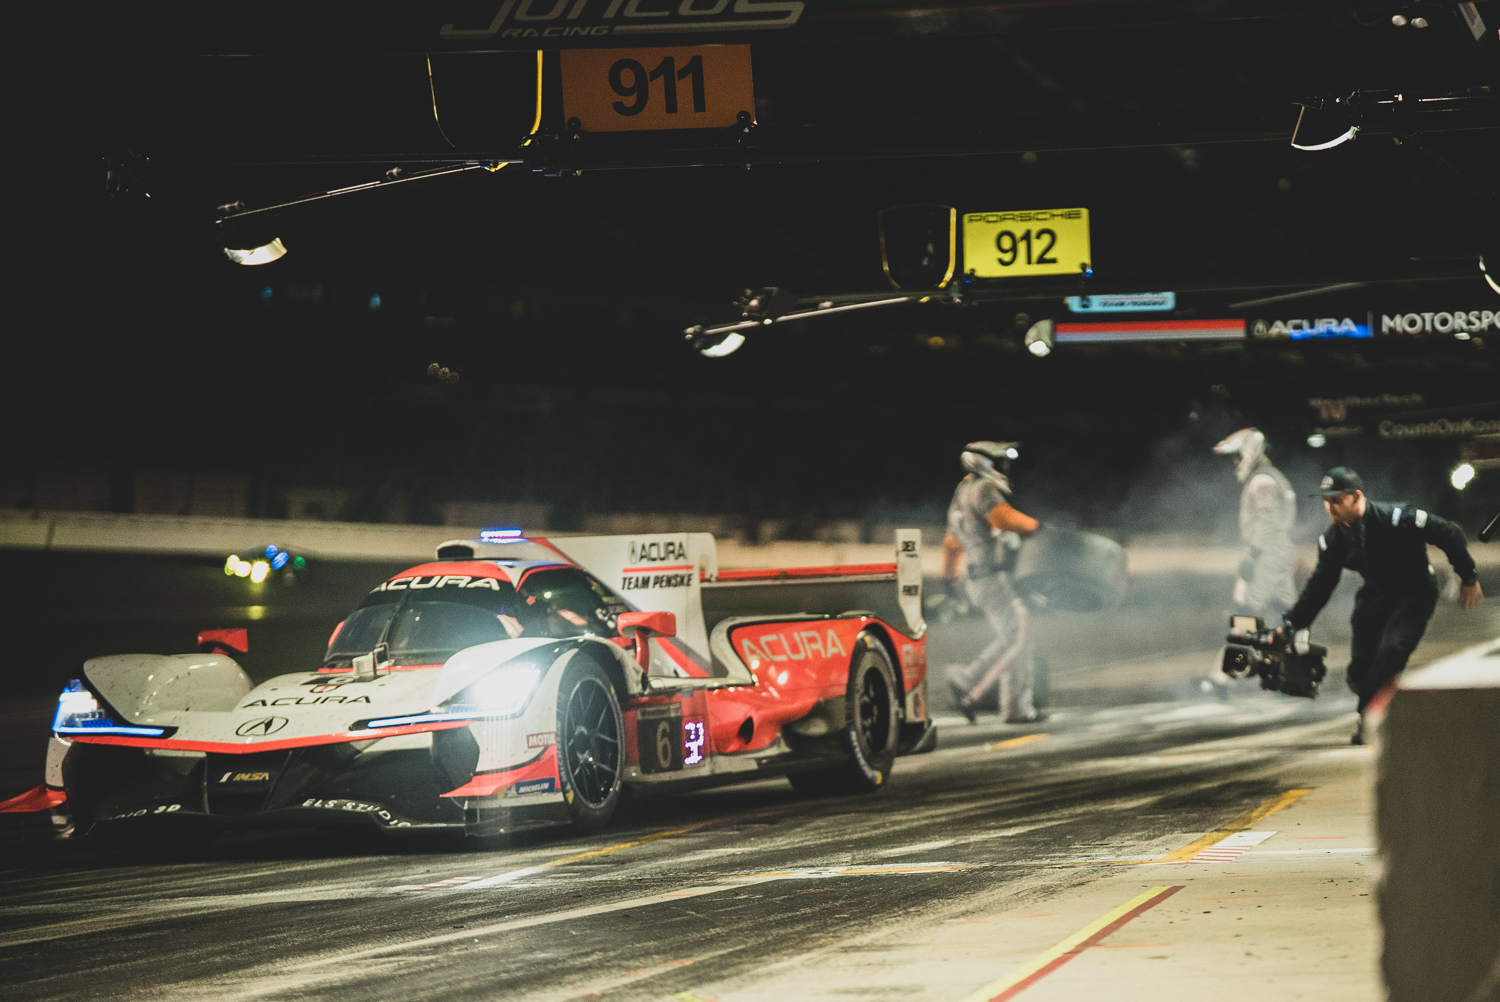 TV crews also took shifts chasing cars throughout the night. One lucky crew member chases down an Acura DPi on pit lane.